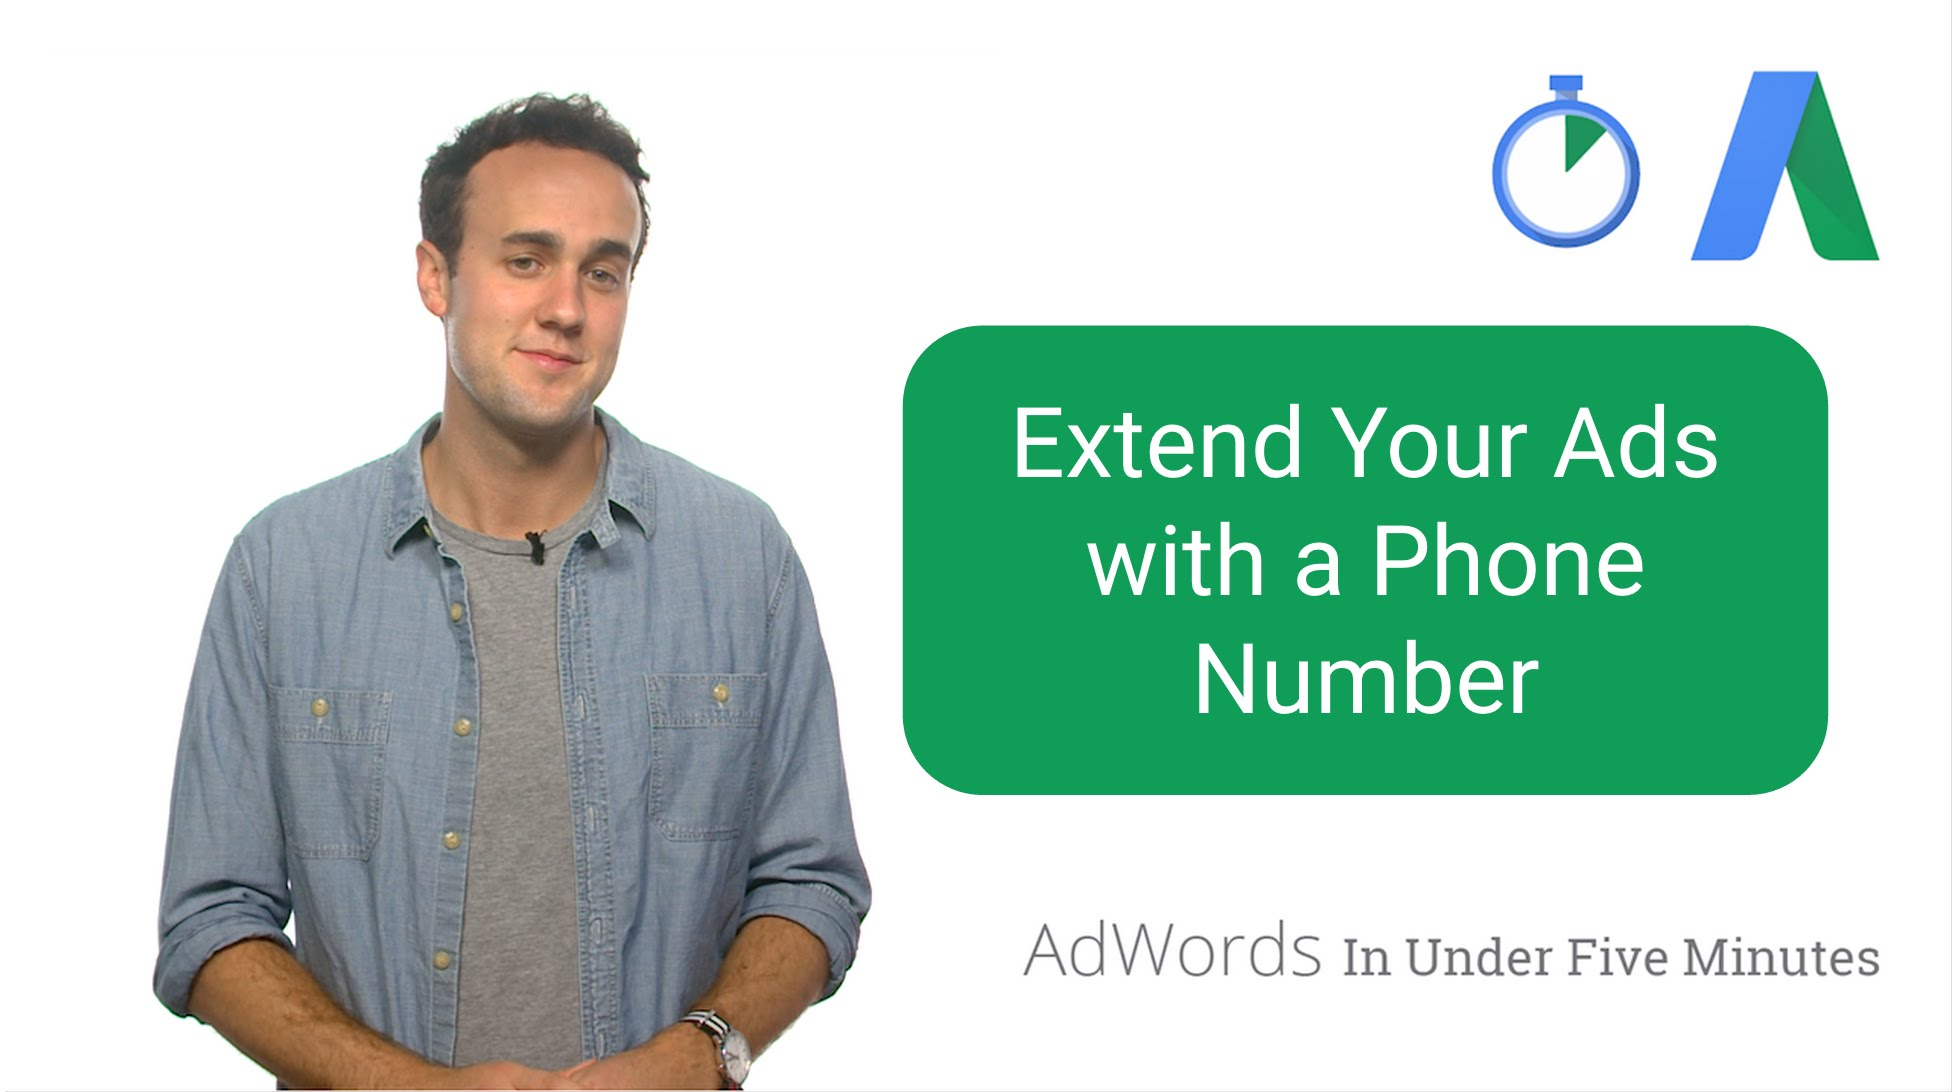 Extend Your Ads with a Phone Number (VIDEO)